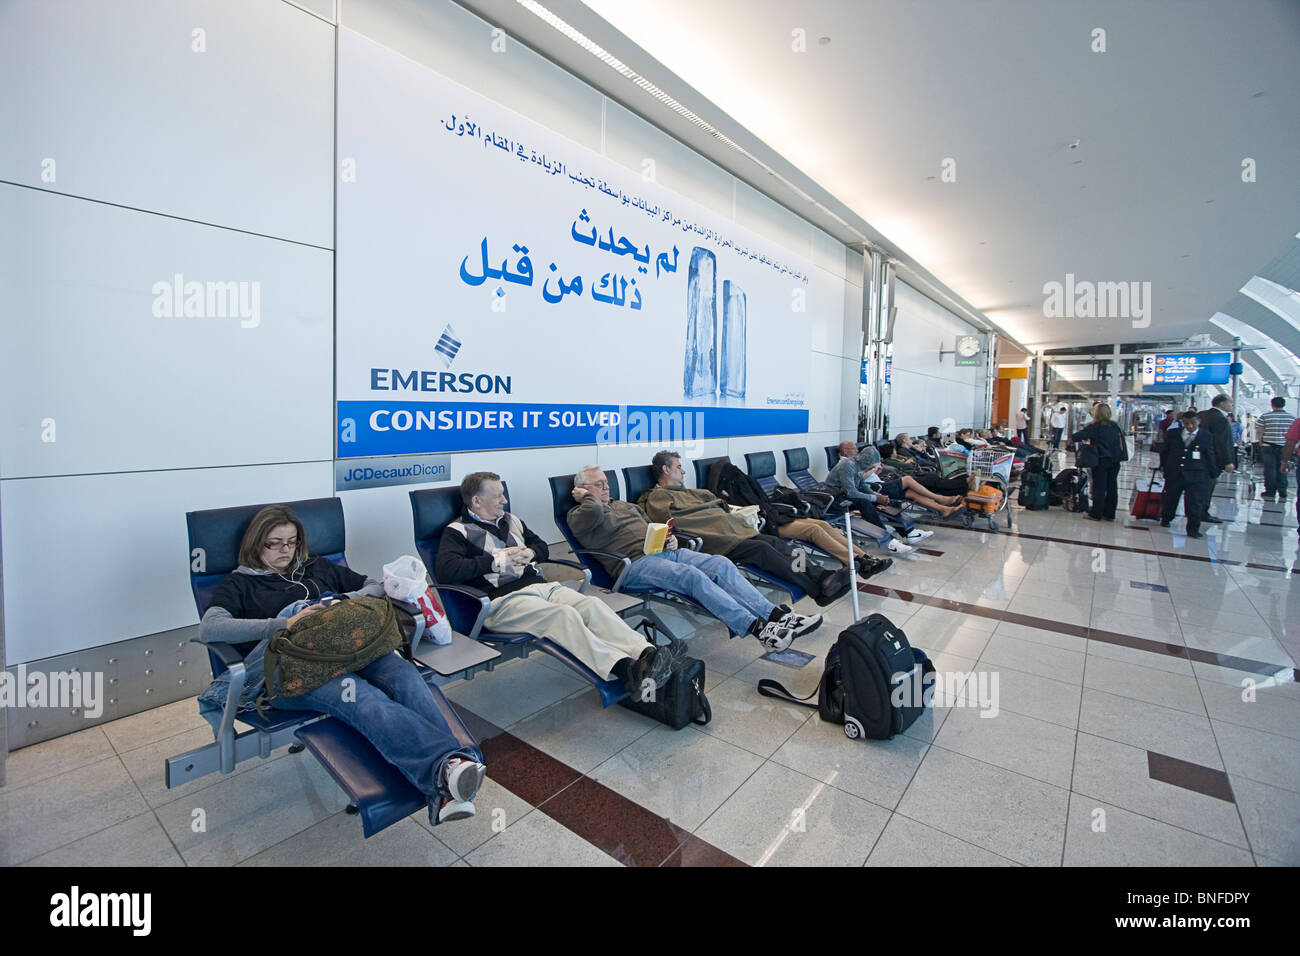 Travellers resting on reclining chairs at Dubai